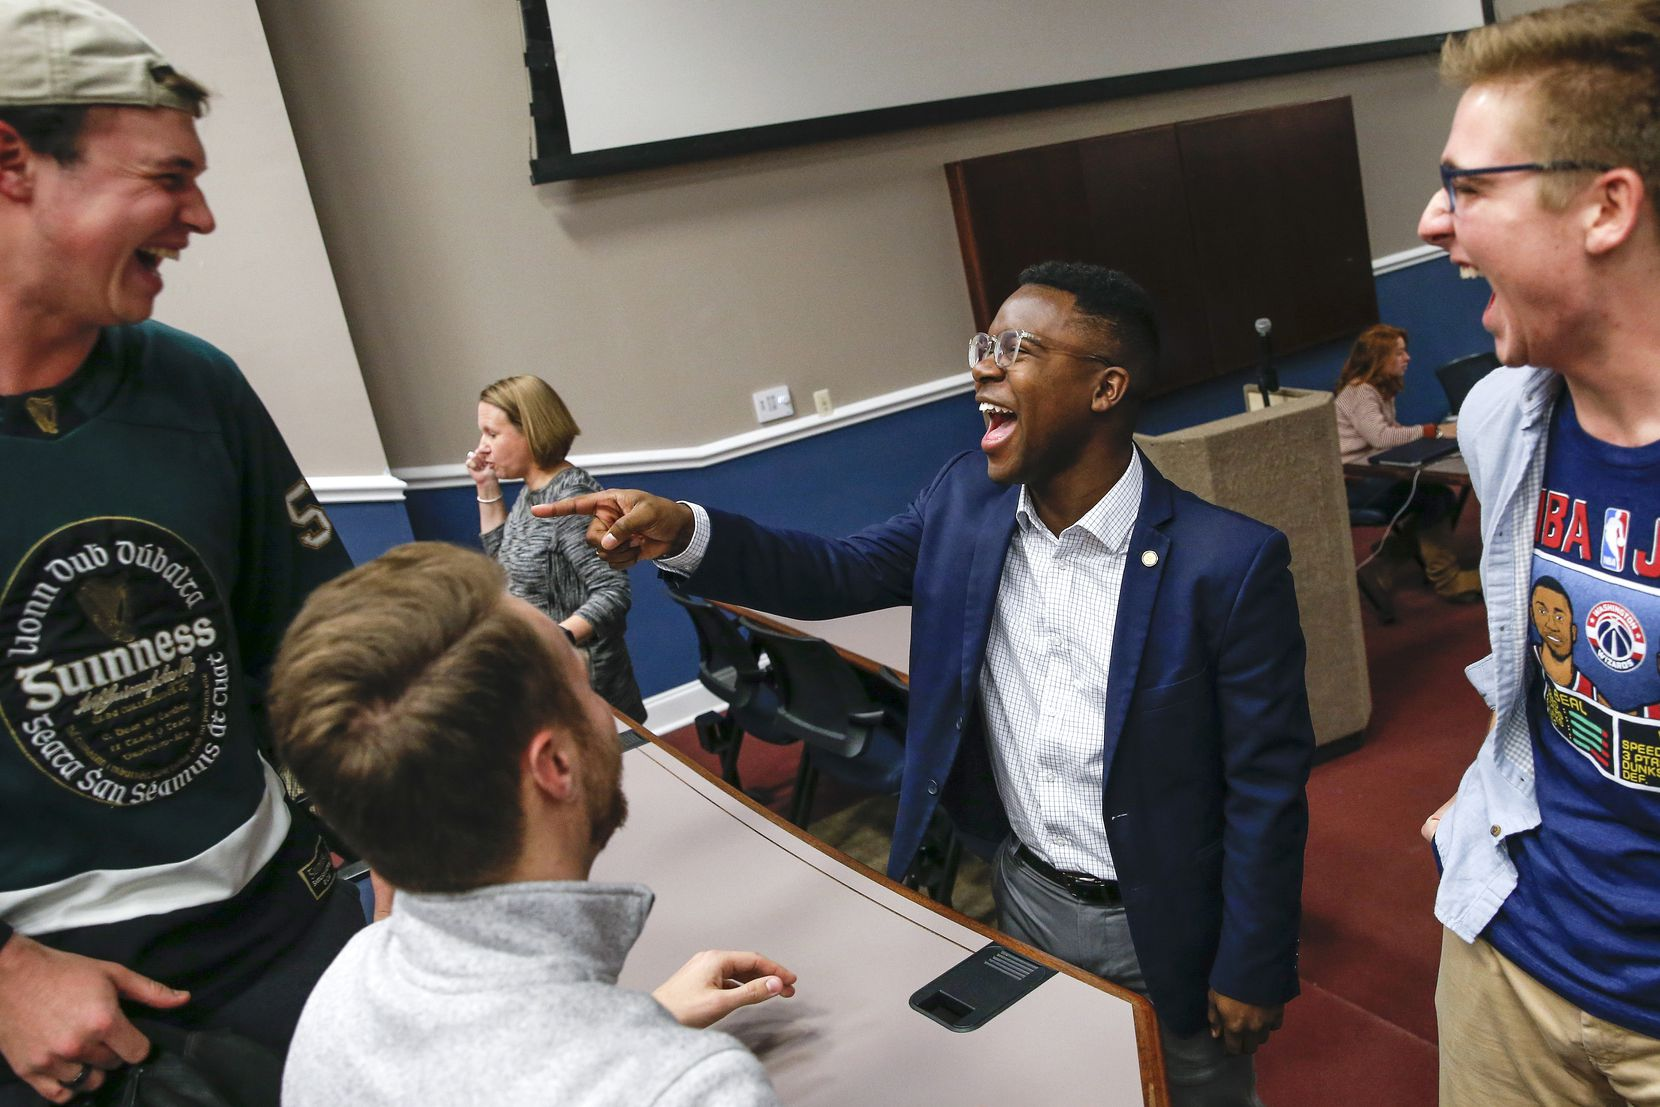 SMU student body president, Darian Taylor, center, chats with Reed Wilkerson, left, Chris Earles, second from left, and Jack Lucas, right, following a meeting of the Student Senate on Tuesday, Jan. 21, 2020 at the Southern Methodist University Hughes-Trigg Student Center in Dallas.